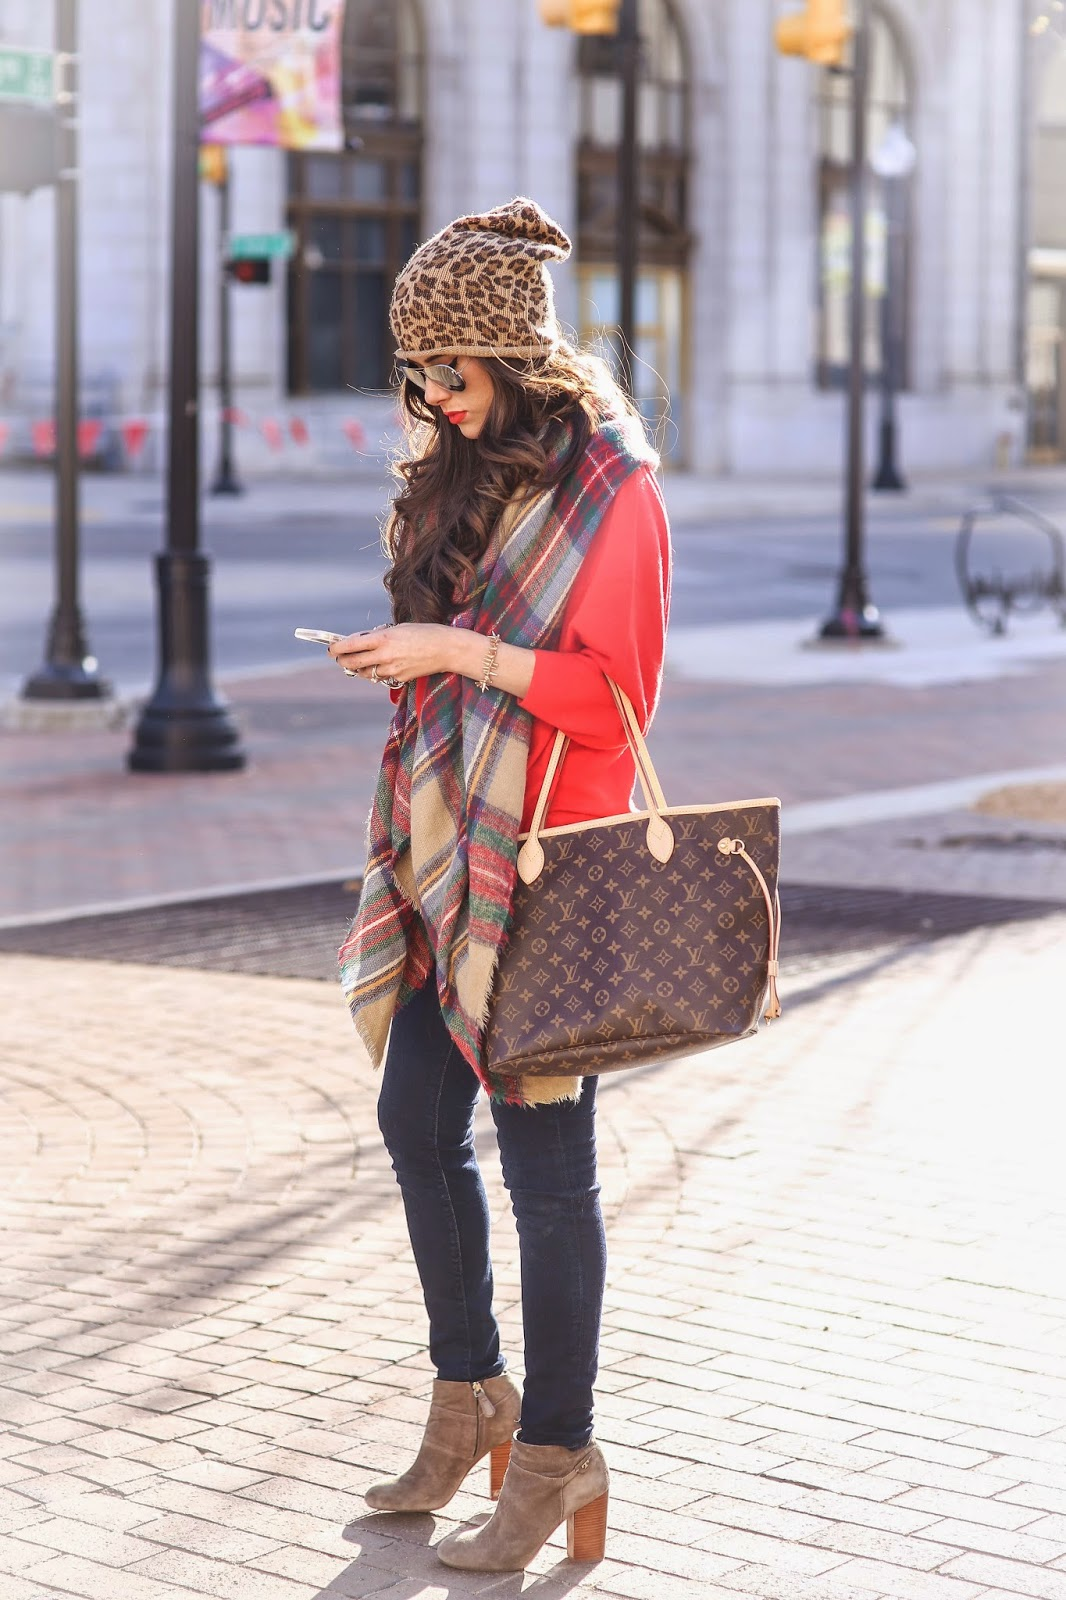 leopard print beanie, tulsa ok fashion blog, fall outfit ideas pinterest, blanket scarf outfit ideas, how to style a blanket scarf, pinterest fall ootd, booties with scarf outfit, emily gemma, red sweater with blanket scarf